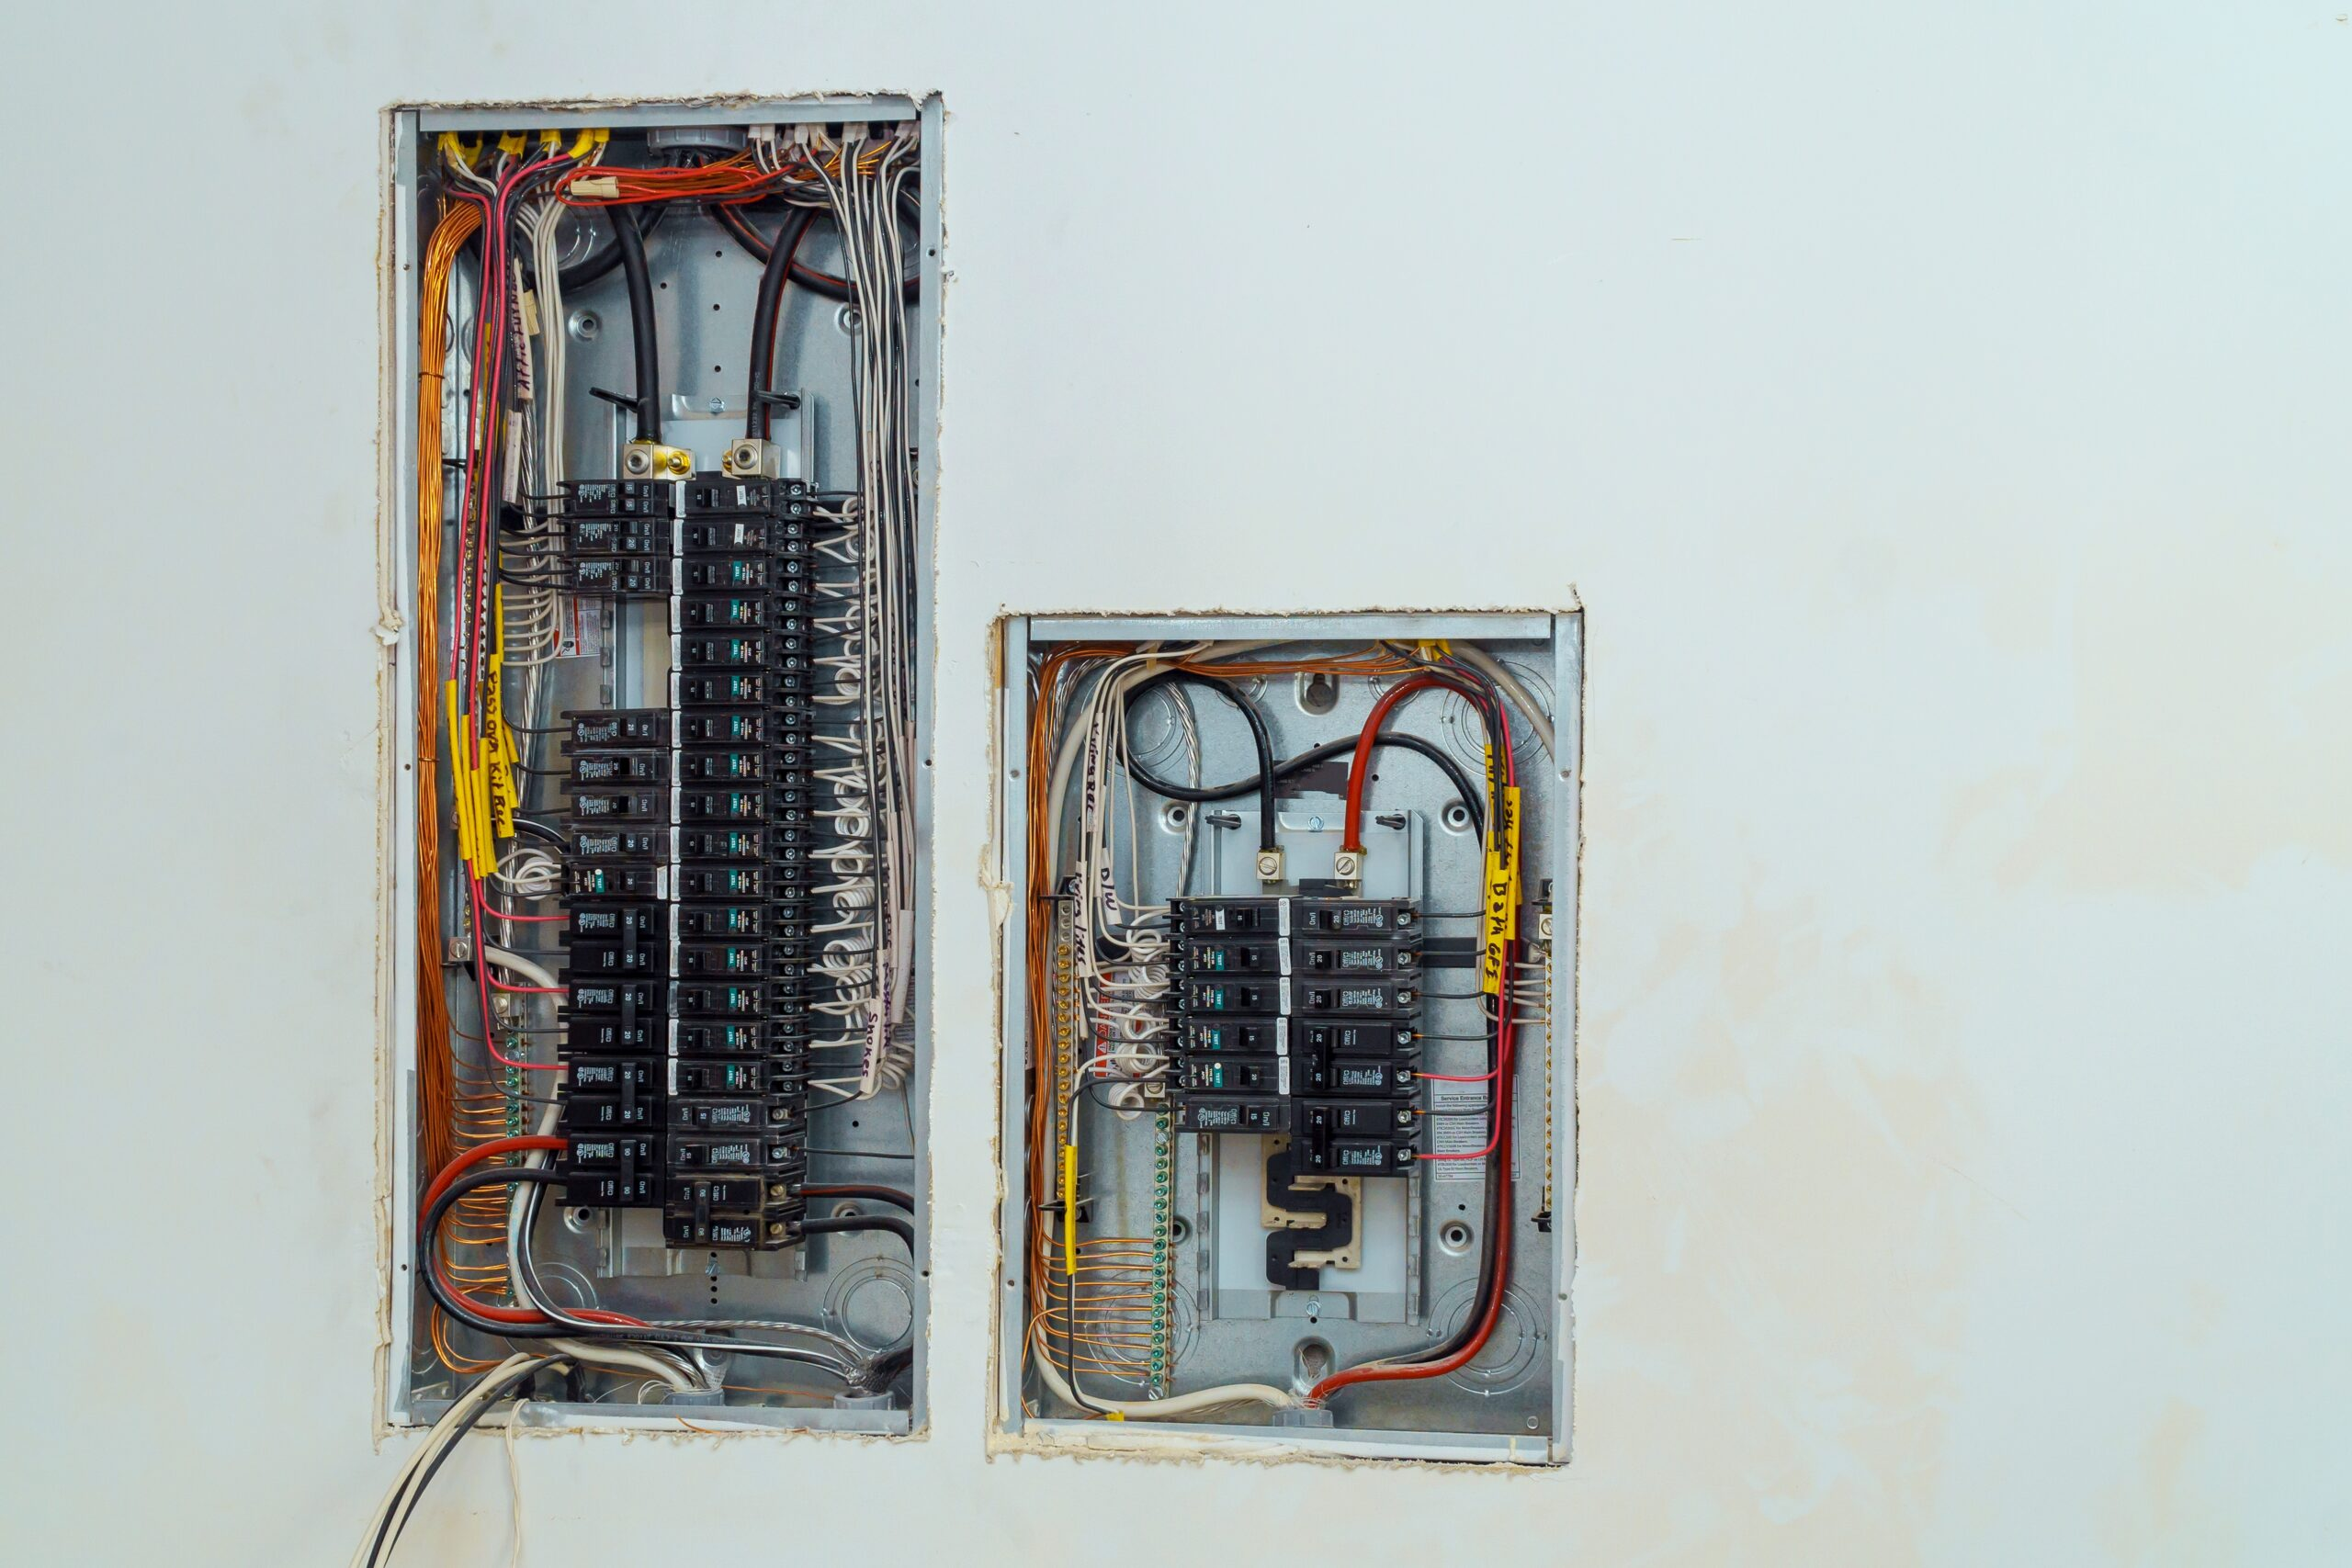 Voltage switchboard with circuit breakers electrical